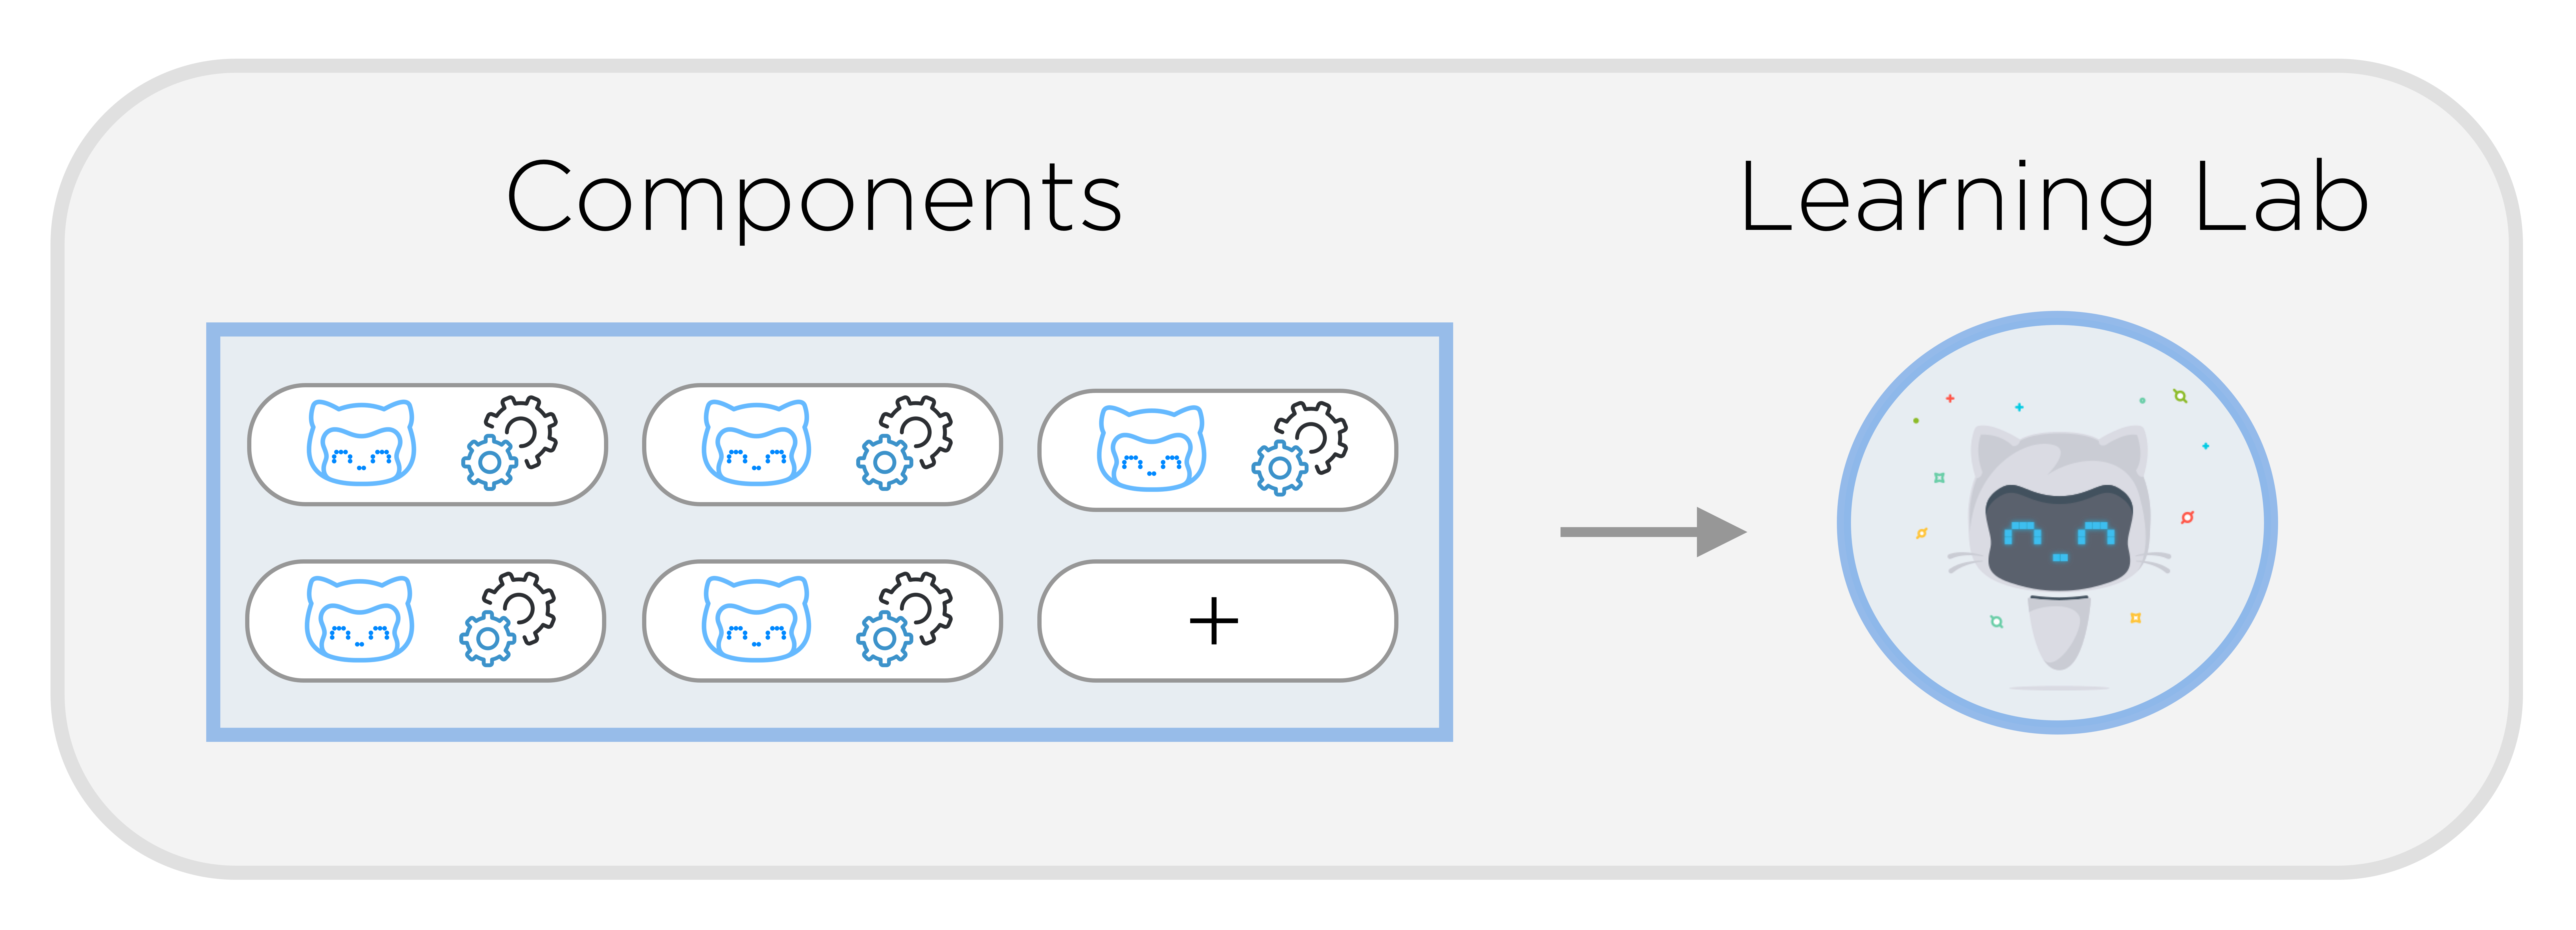 learning-lab-components